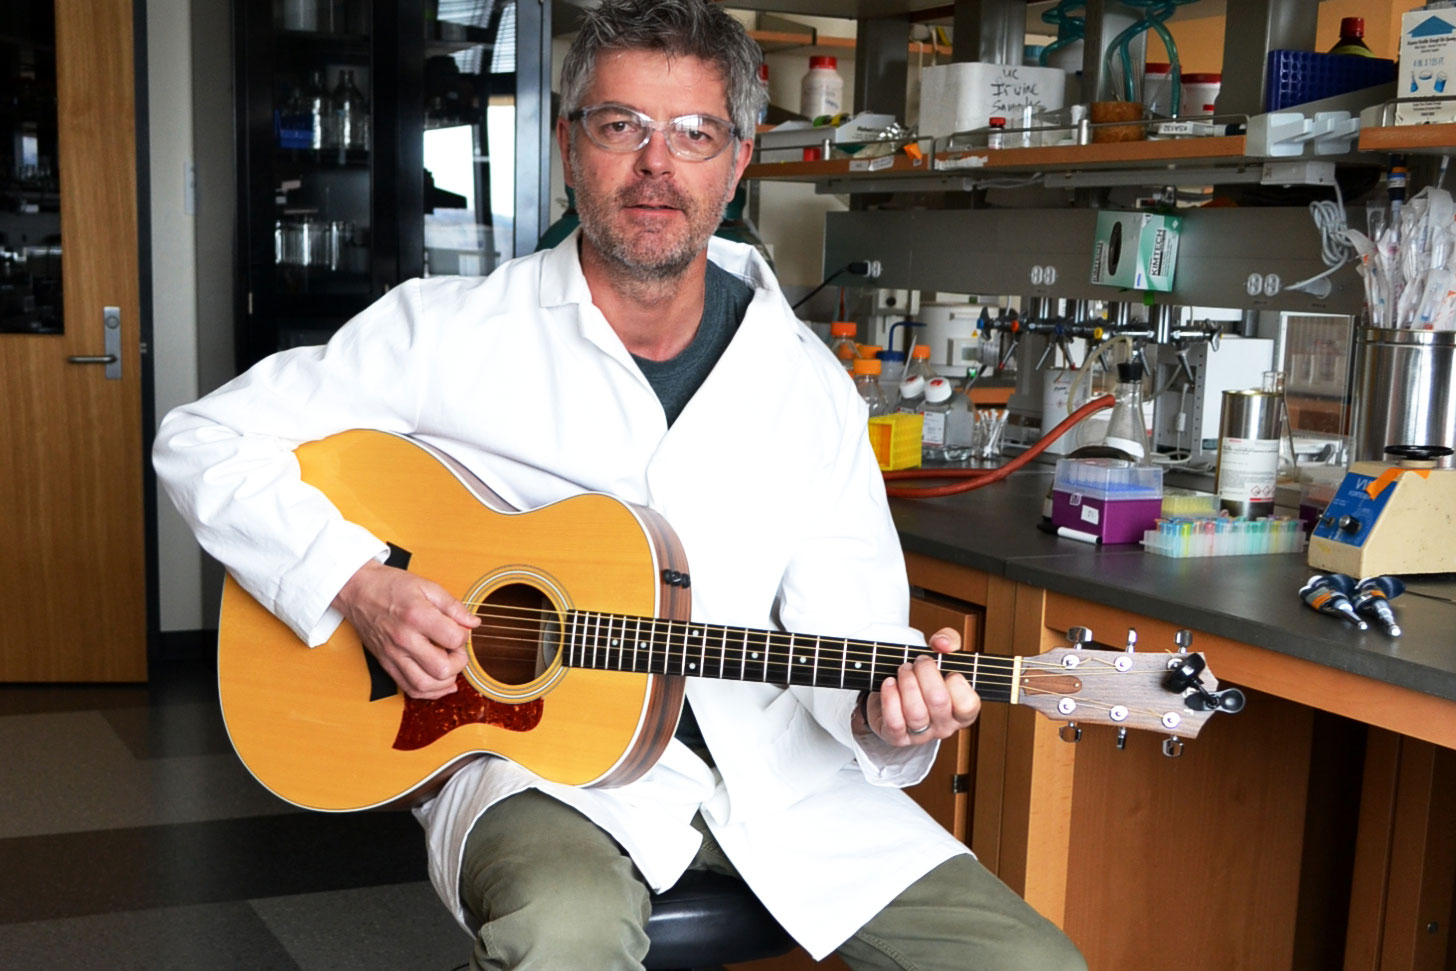 <p>Biological chemist and Fulbright Scholar Colin Campbell plays the bagpipes, guitar and molecules.</p>